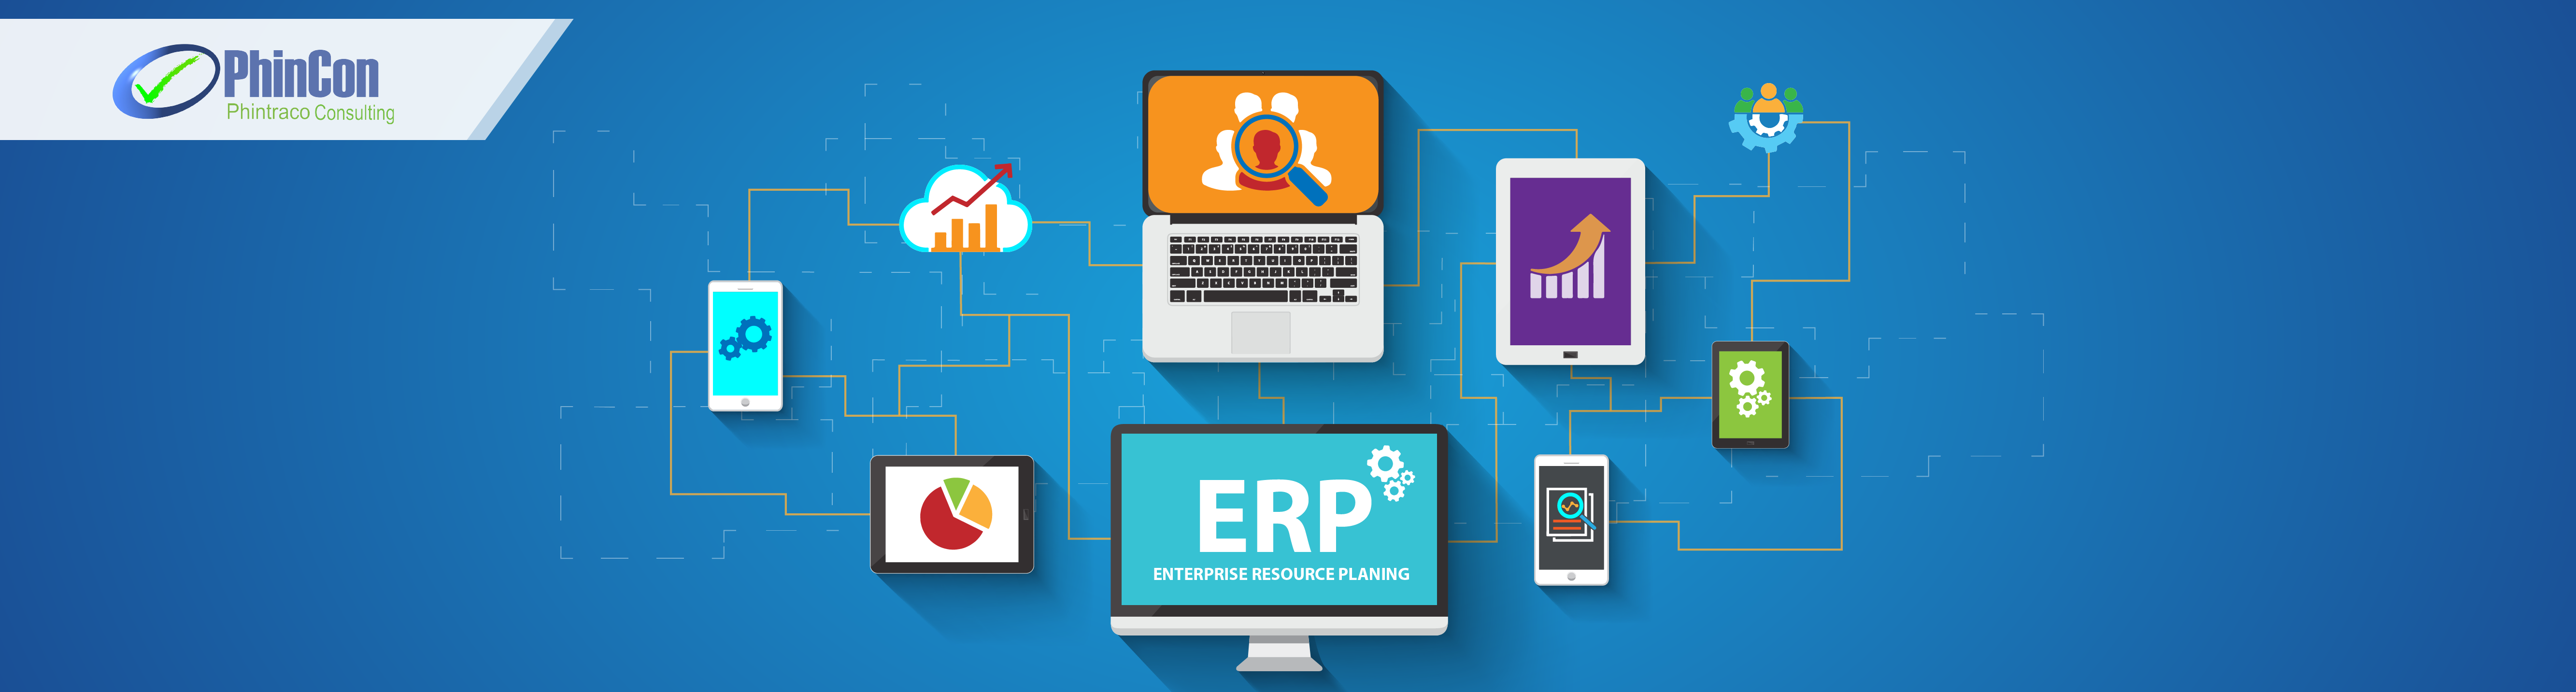 5 Reasons Why ERP Is a Business Necessity